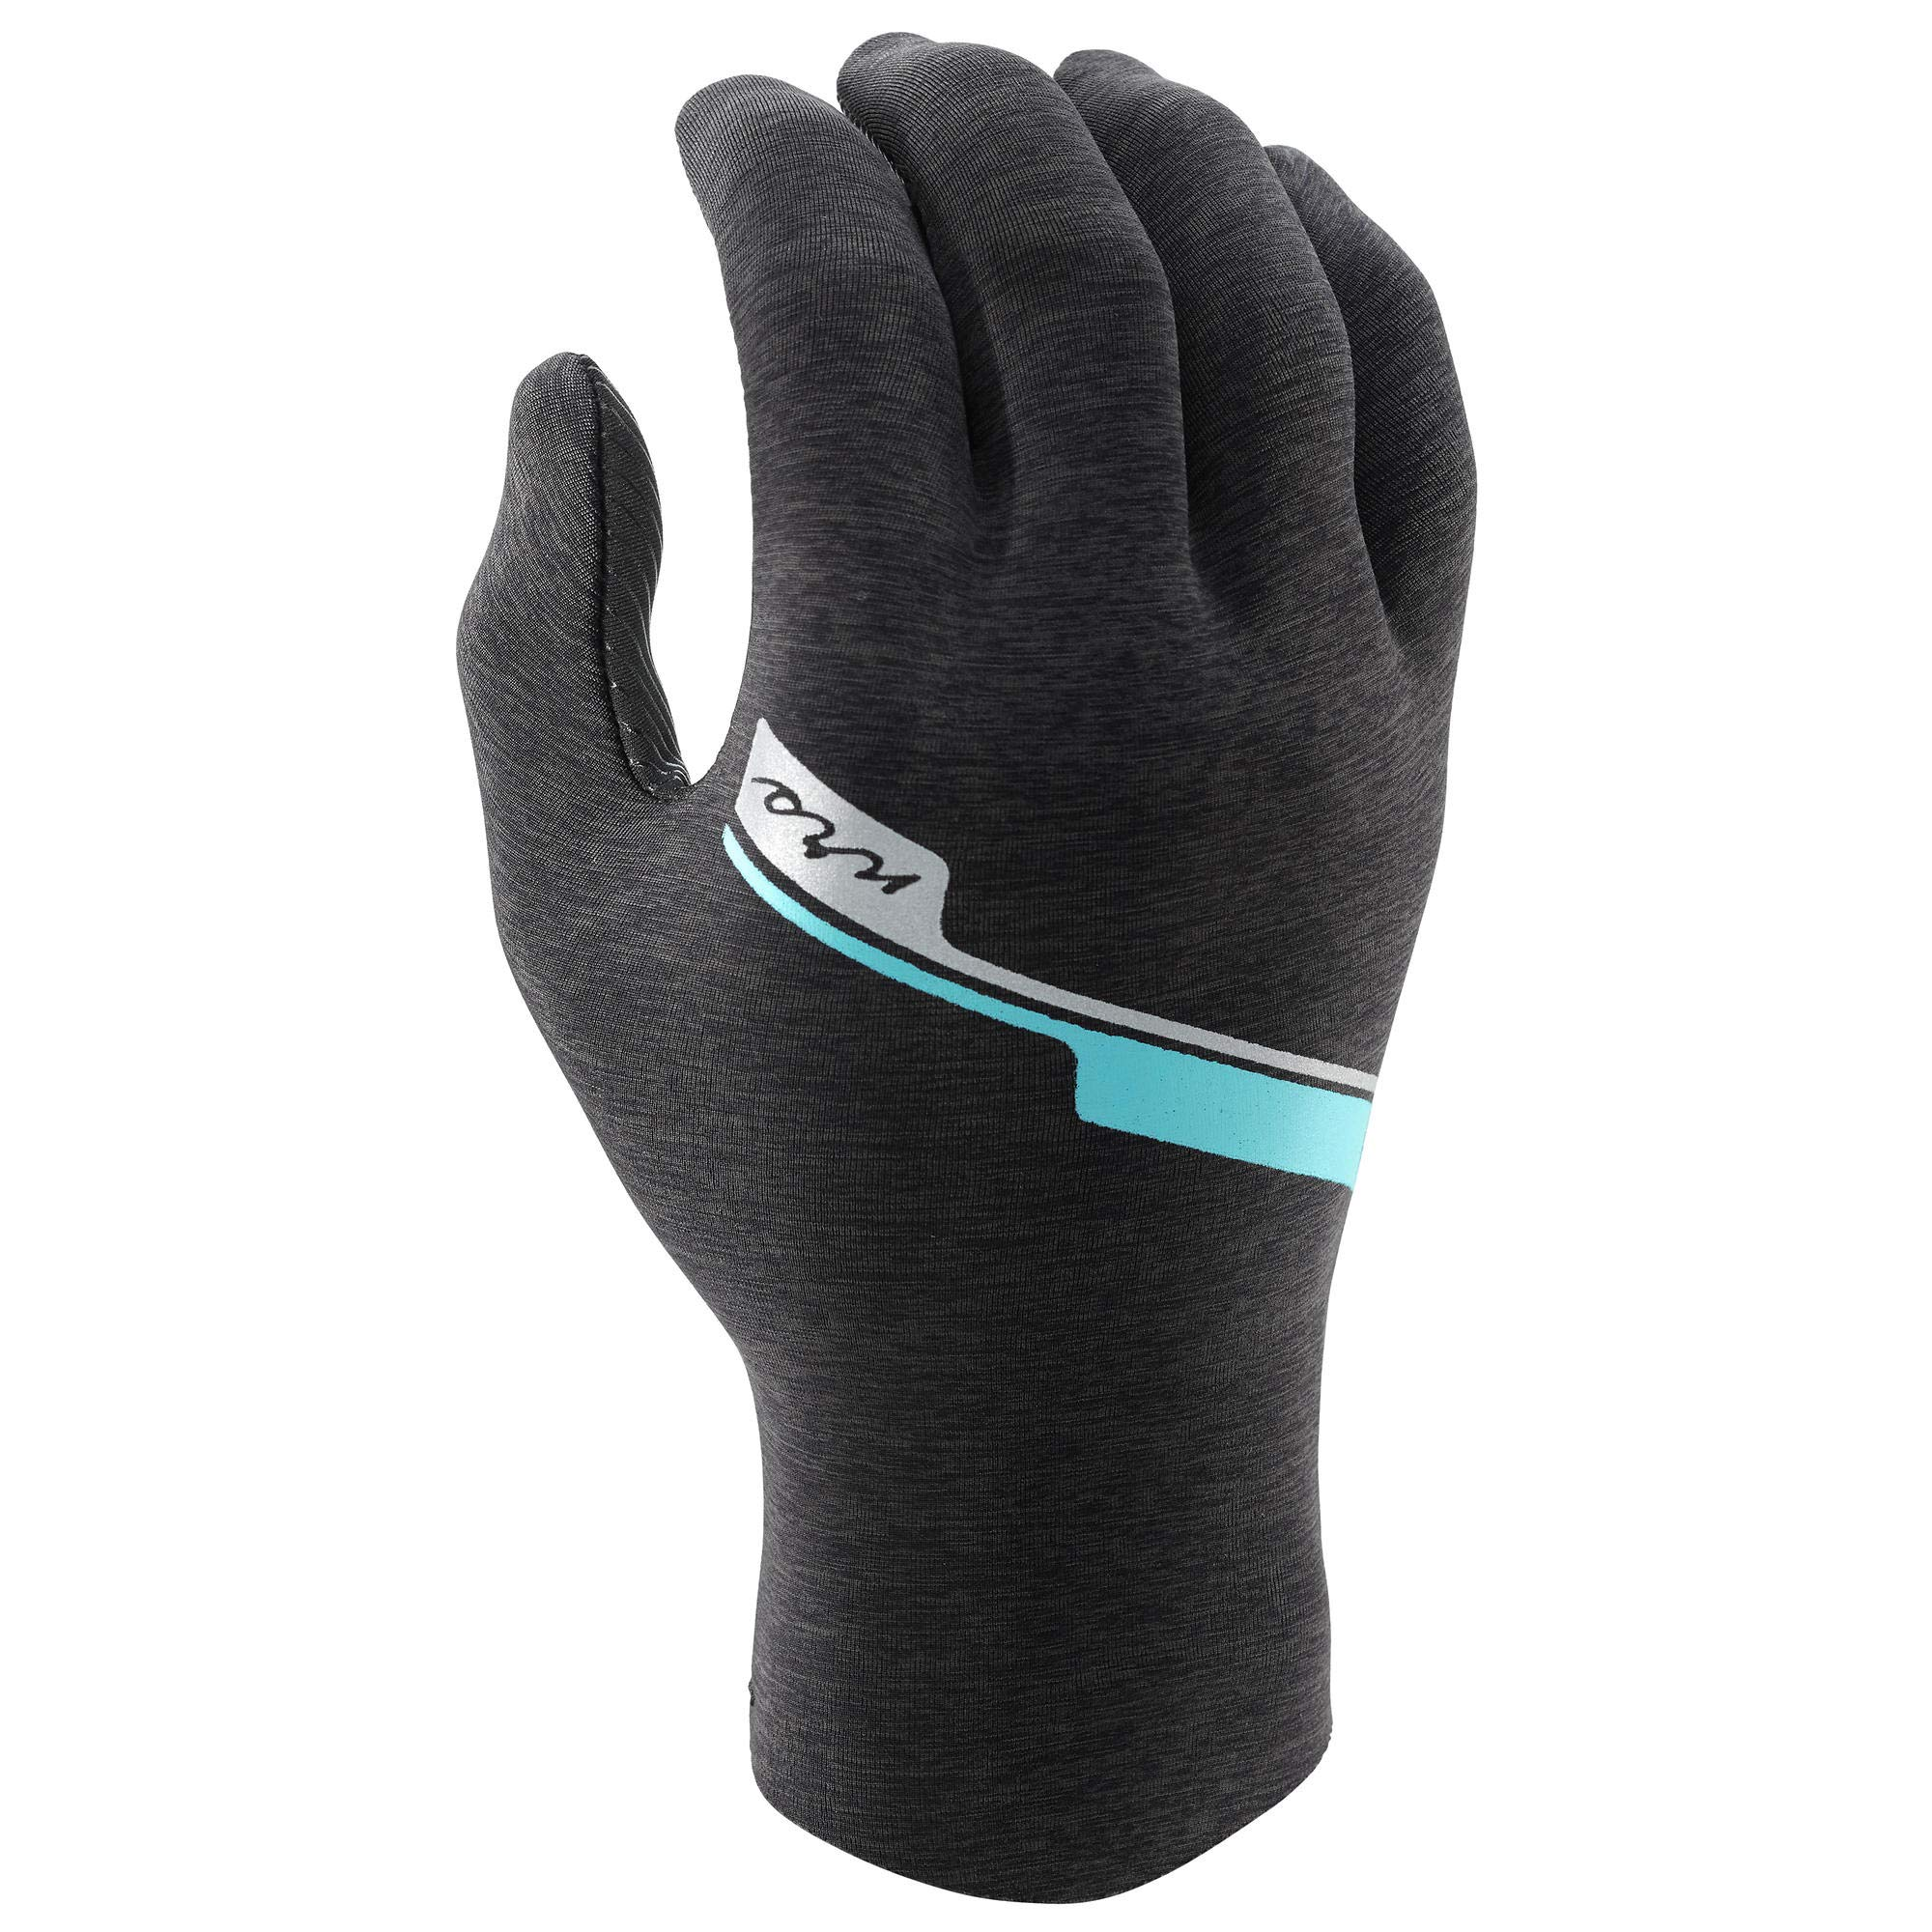 NRS Hydroskin Glove - Women's Grey Heather Medium by NRS